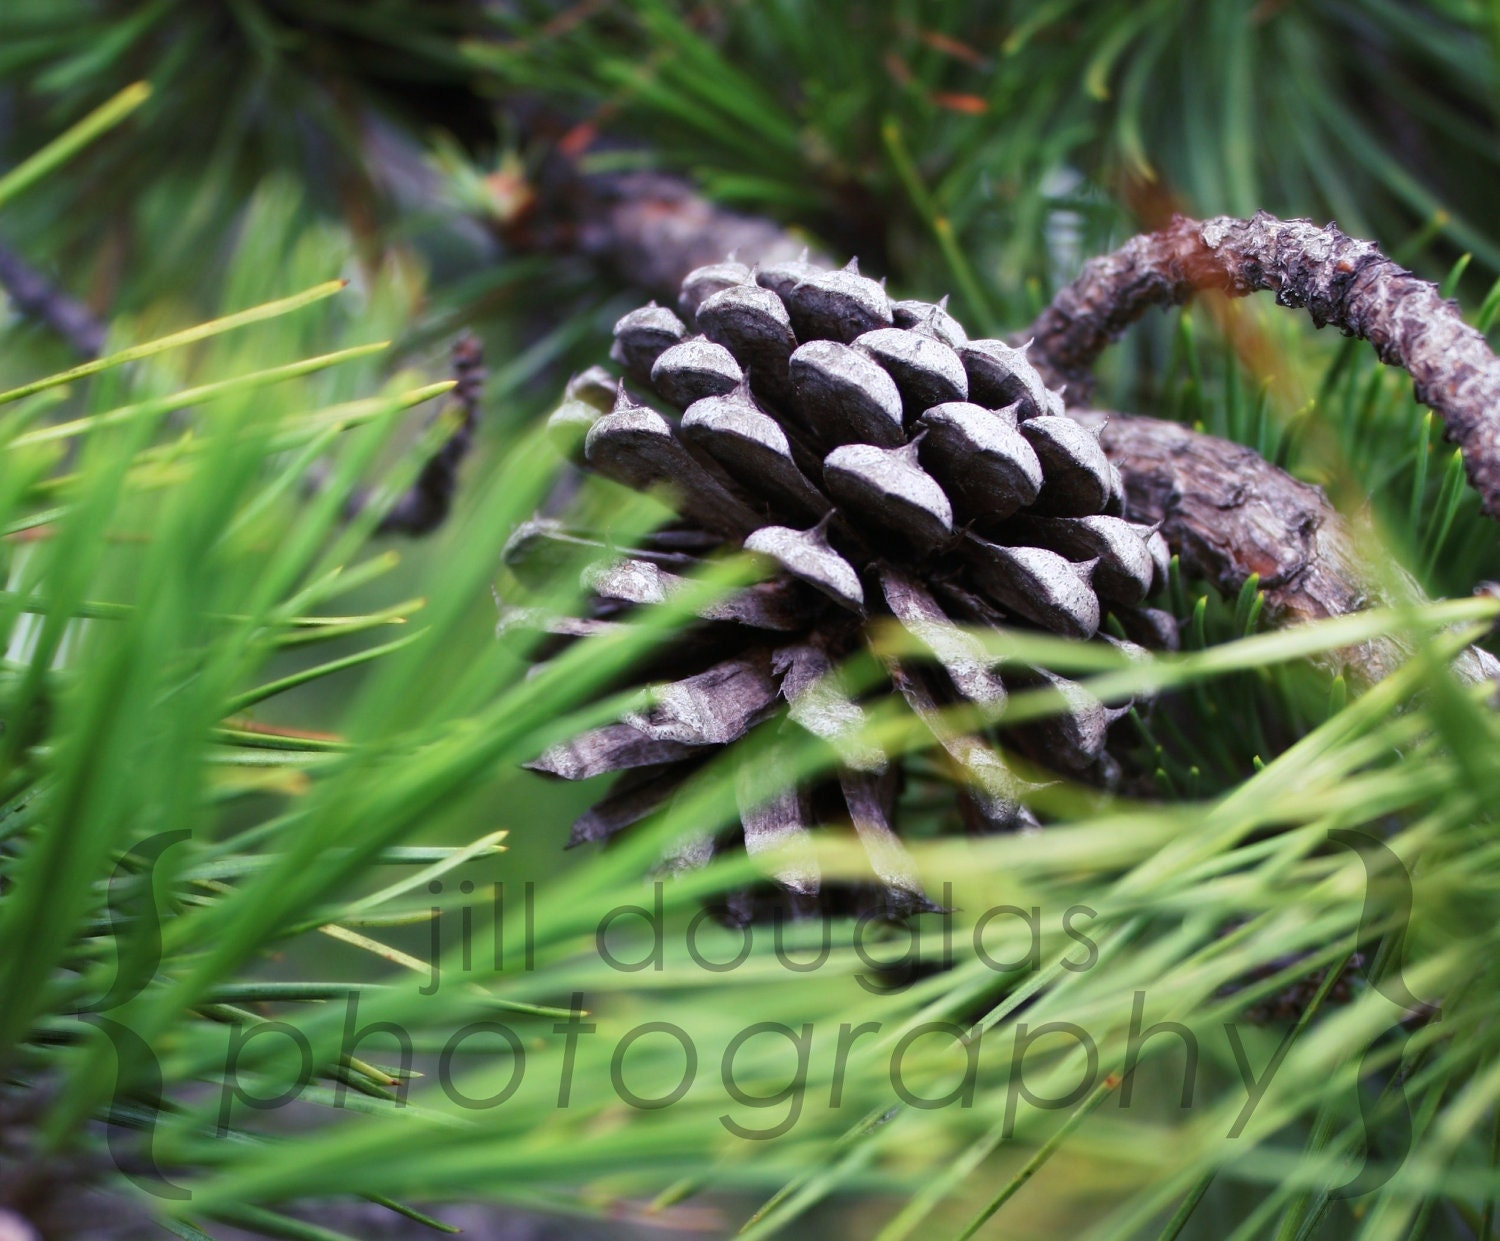 "Pinecone Photography Print 8x10"", Matted"